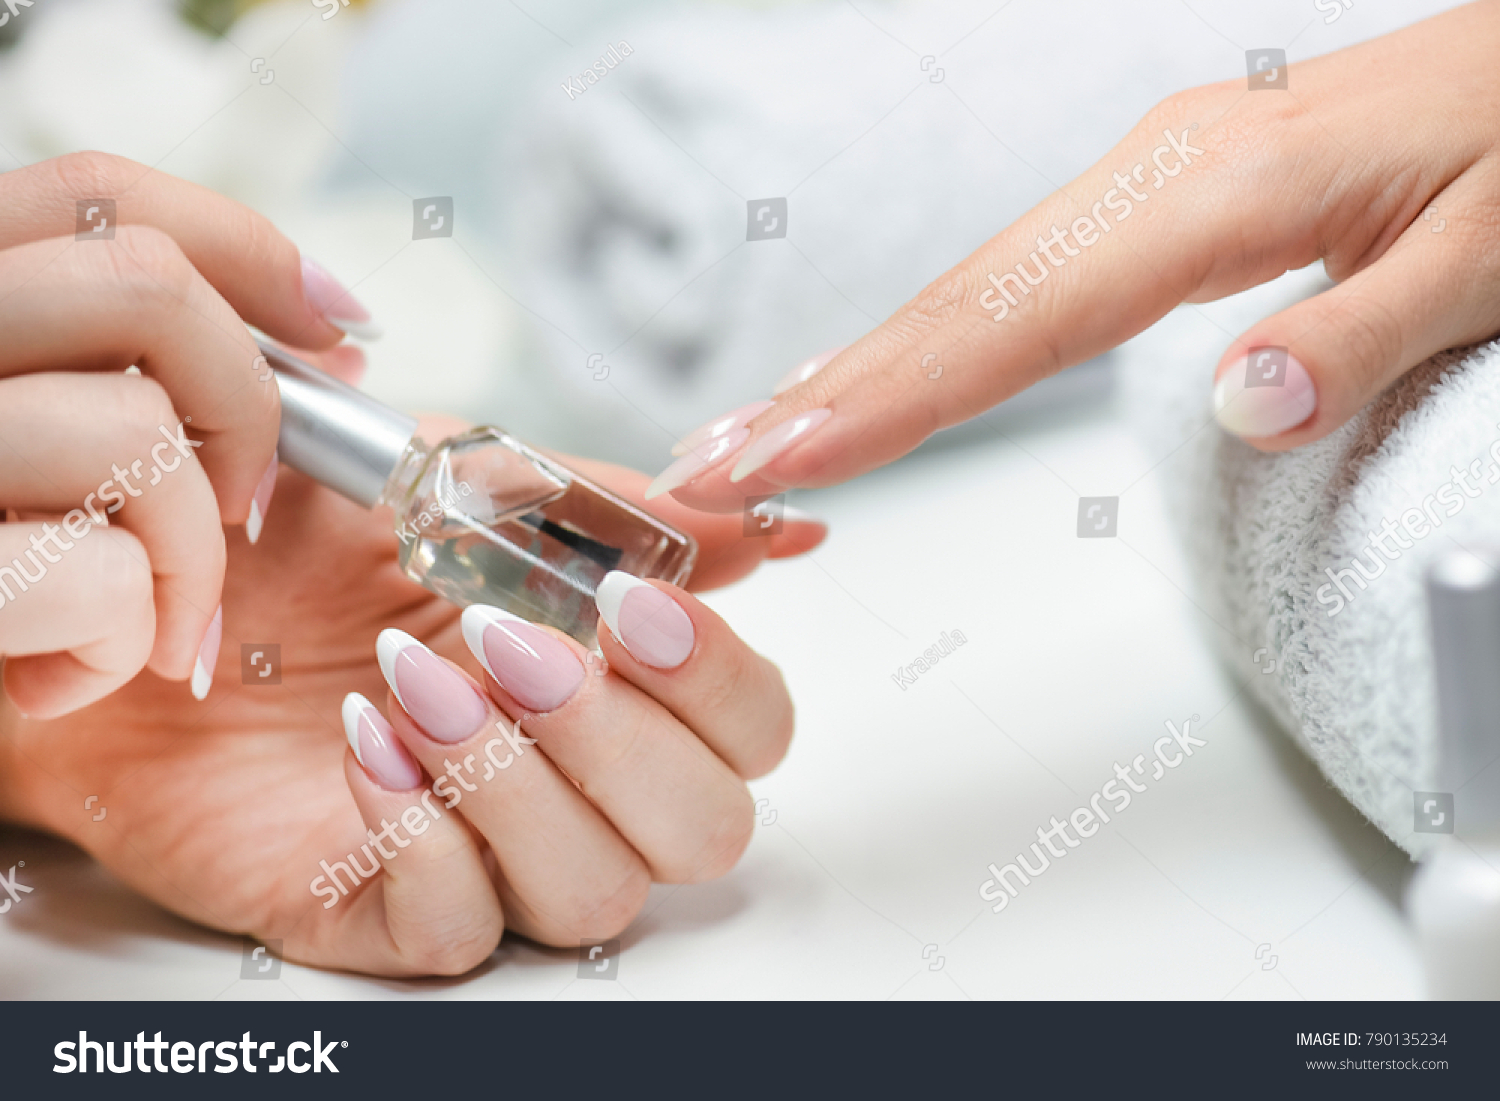 Woman Nails Manicure Luxury Nails Design Stock Photo 790135234 ...